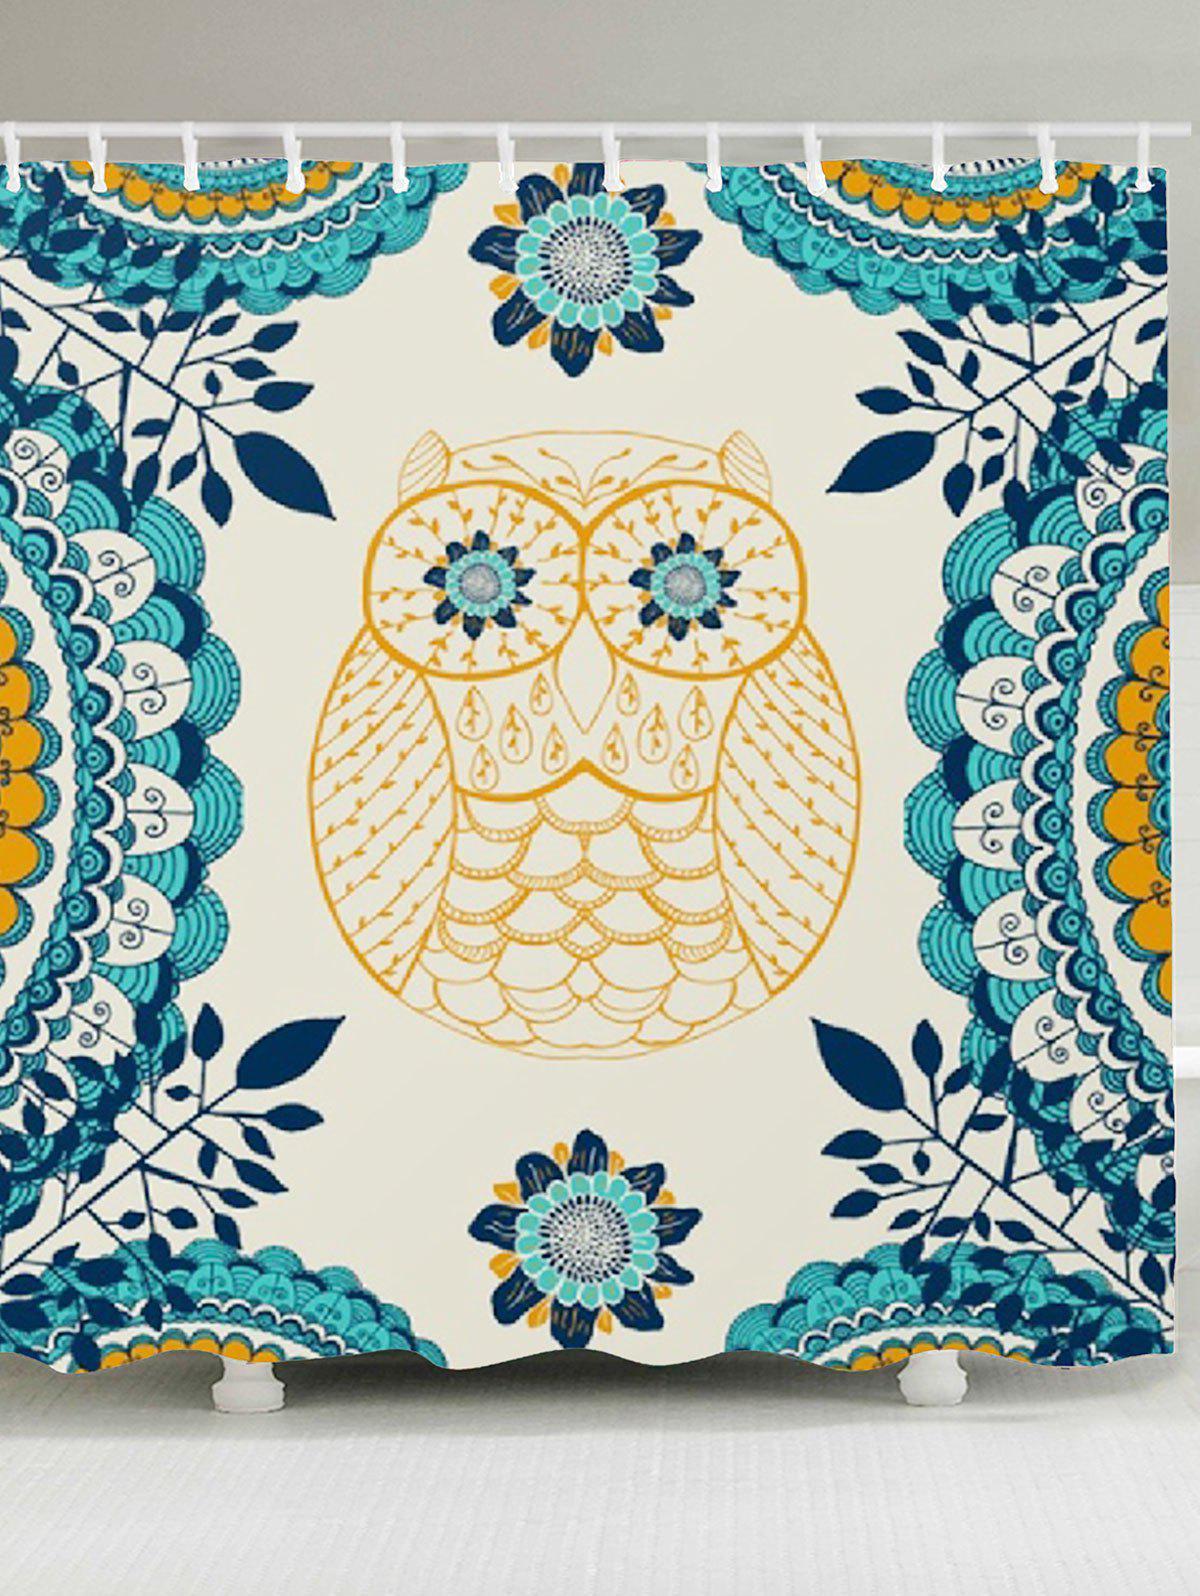 Waterproof Leaves Owl Printed Shower Curtain - COLORFUL W71 INCH * L71 INCH